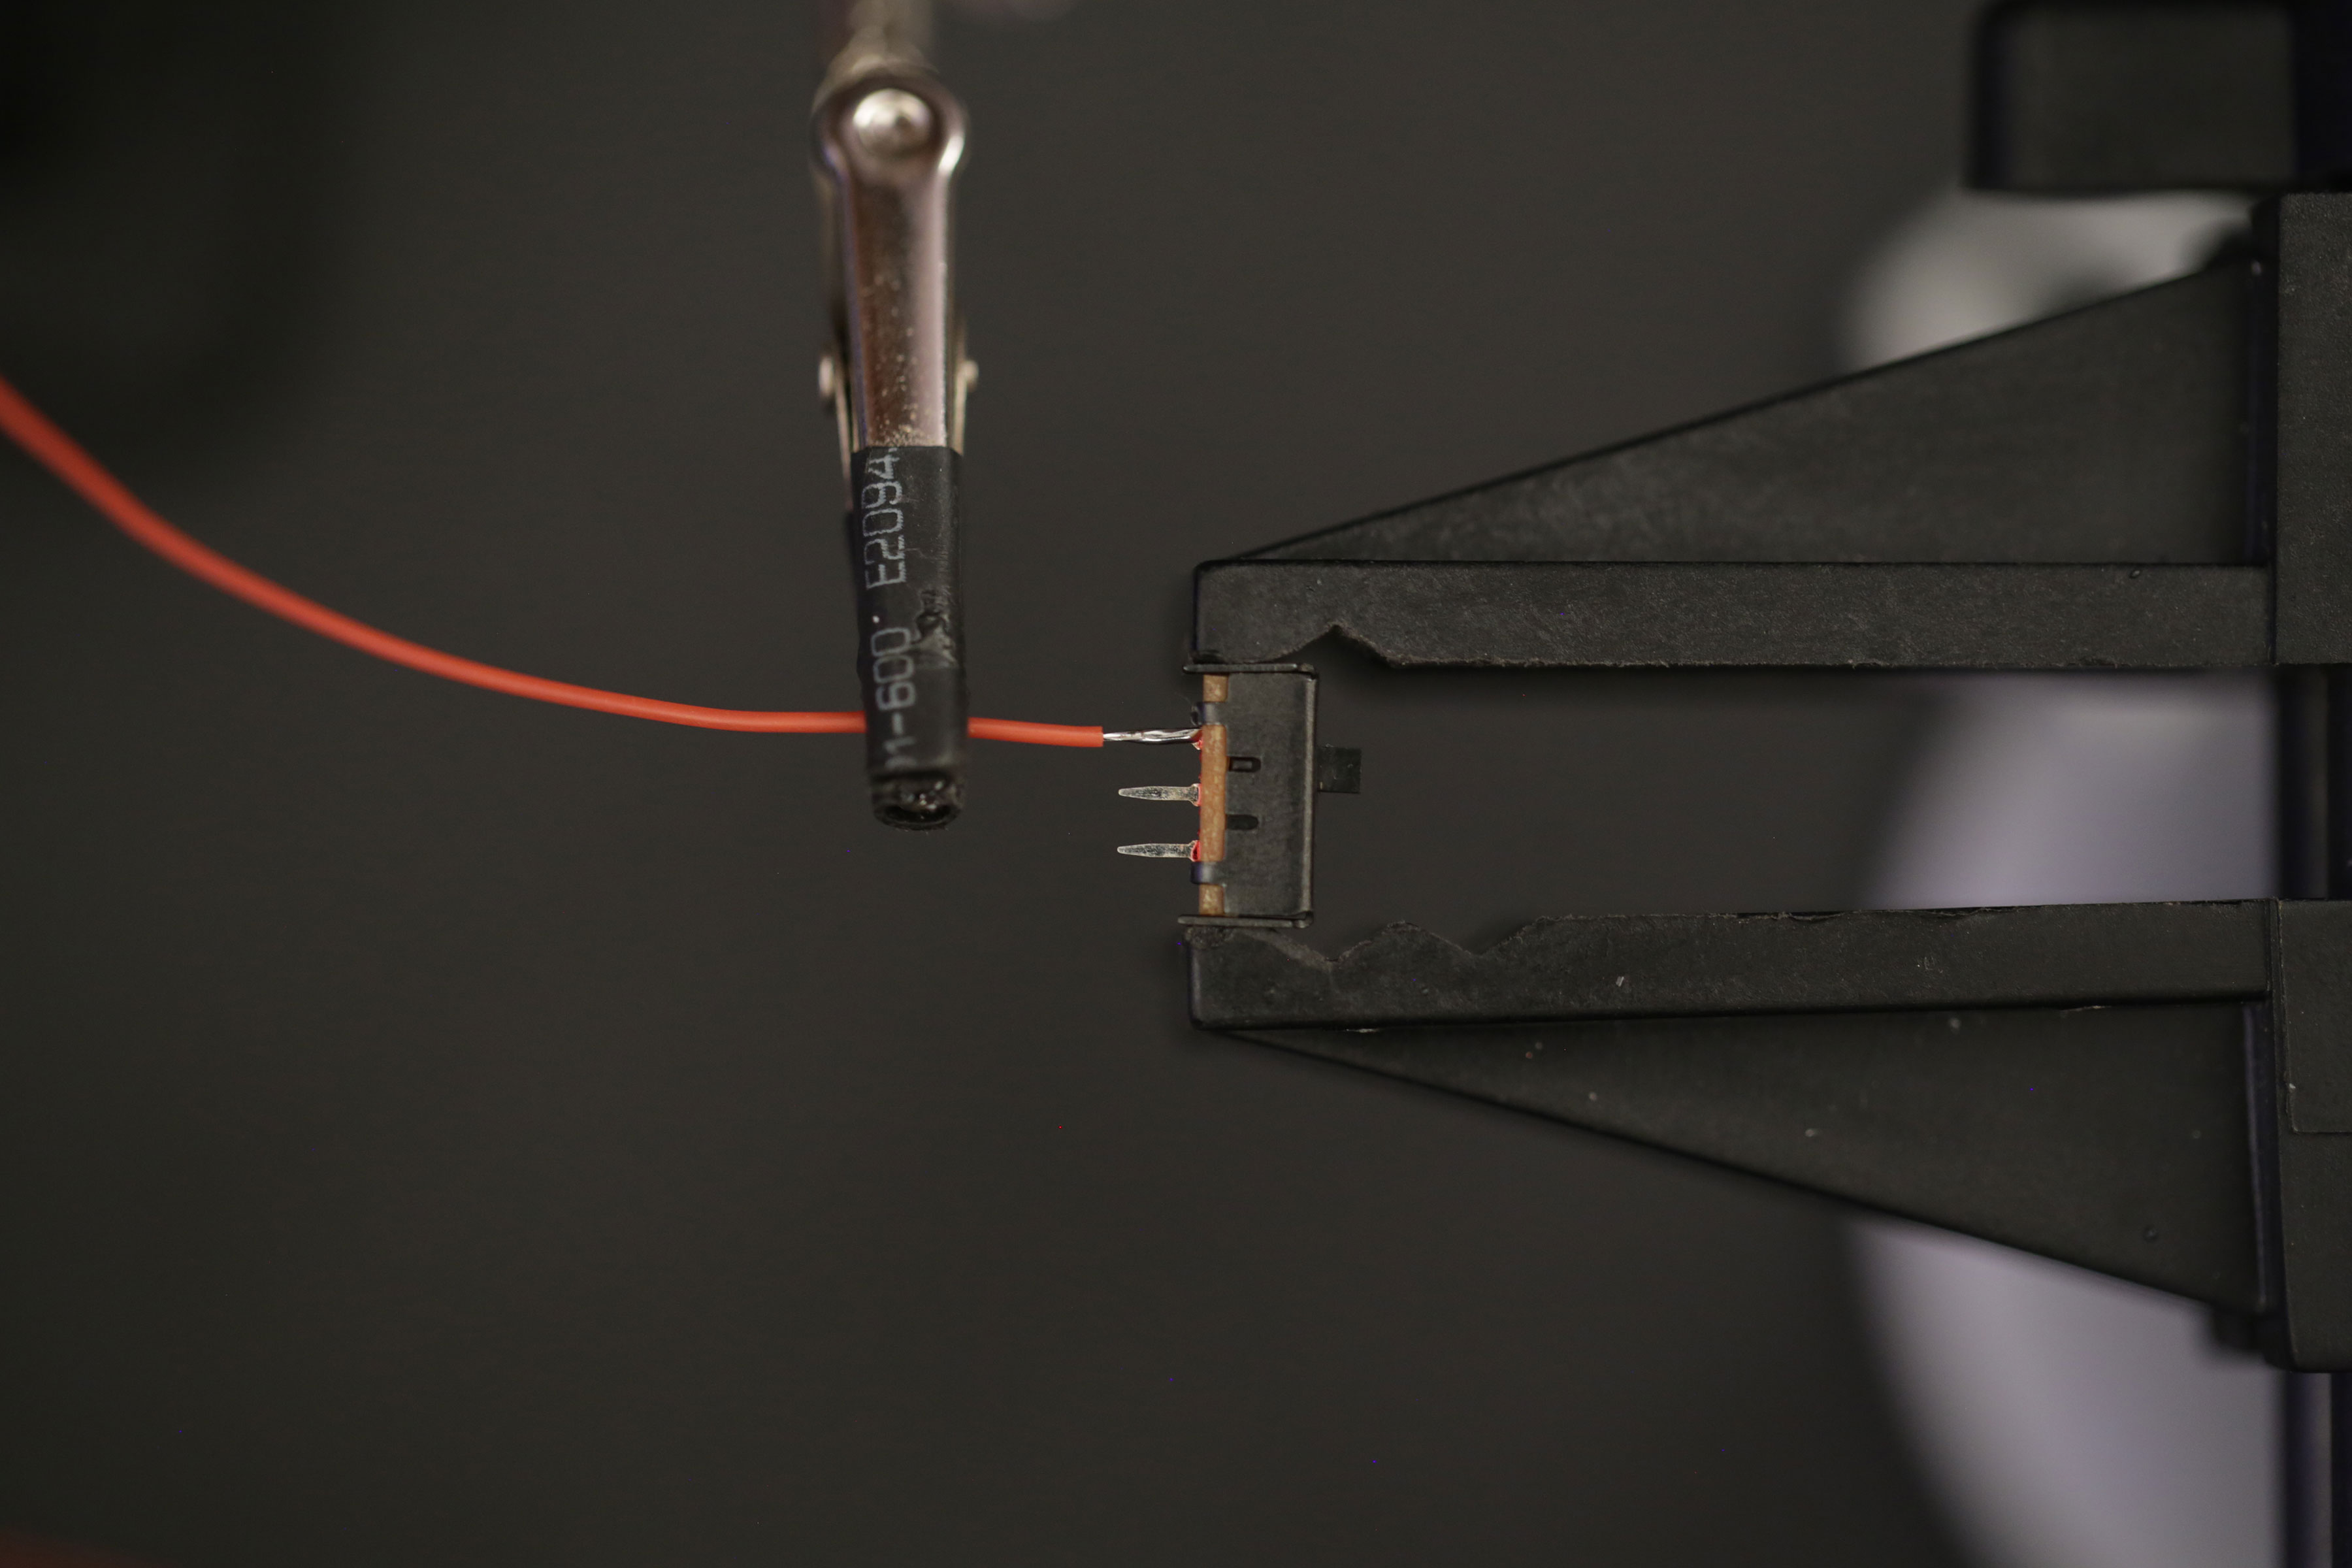 gaming_switch-wire-soldered-a.jpg